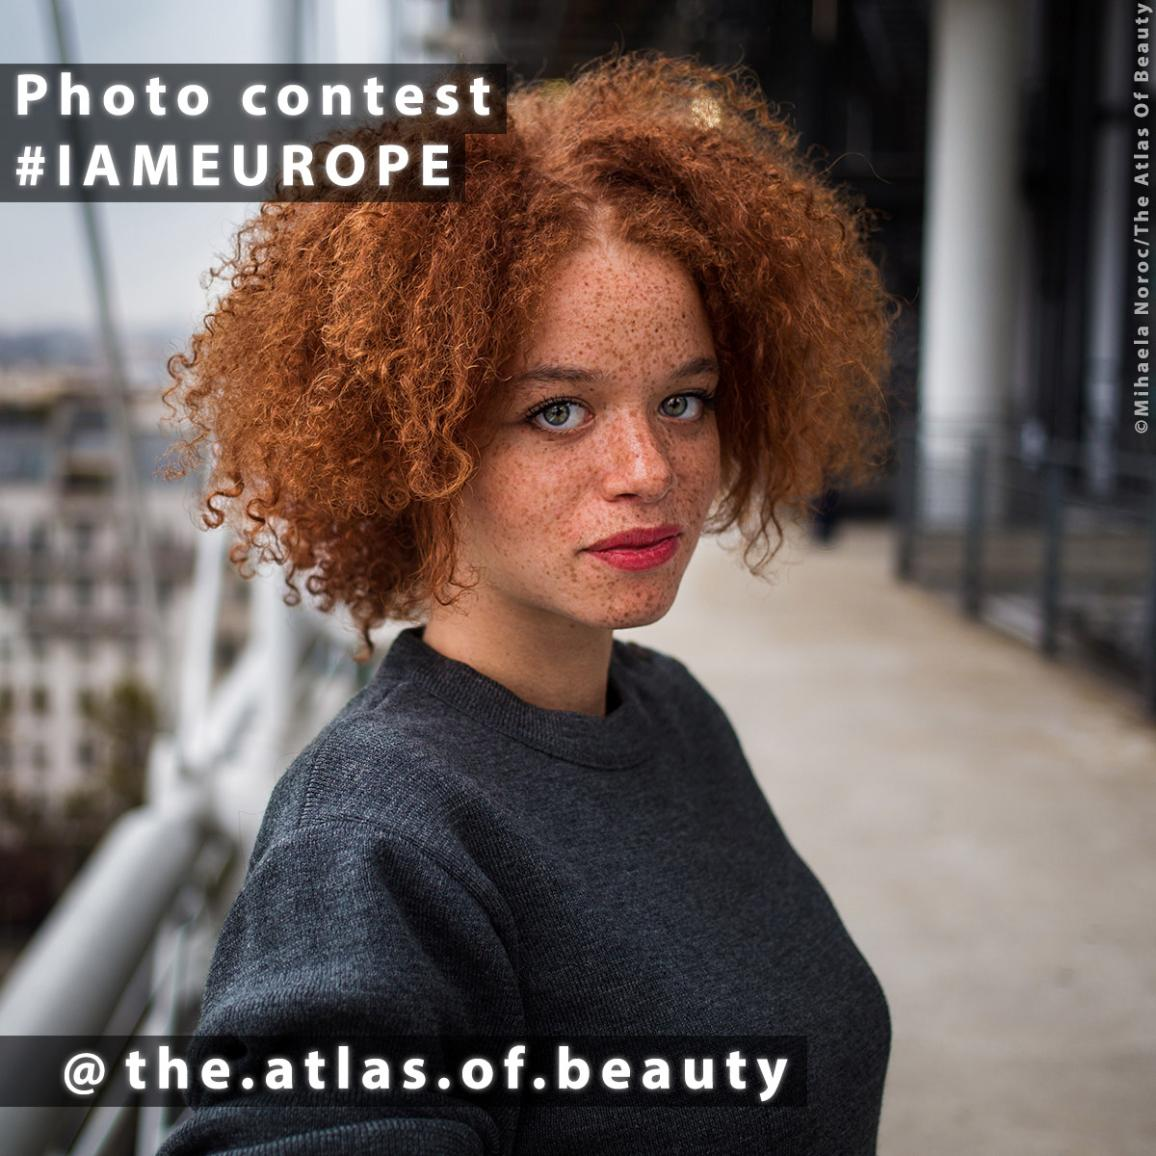 Special thanks to the Romanian photographer Mihaela Noroc (instagram @the.atlas.of.beauty) for your photo contest testimonial